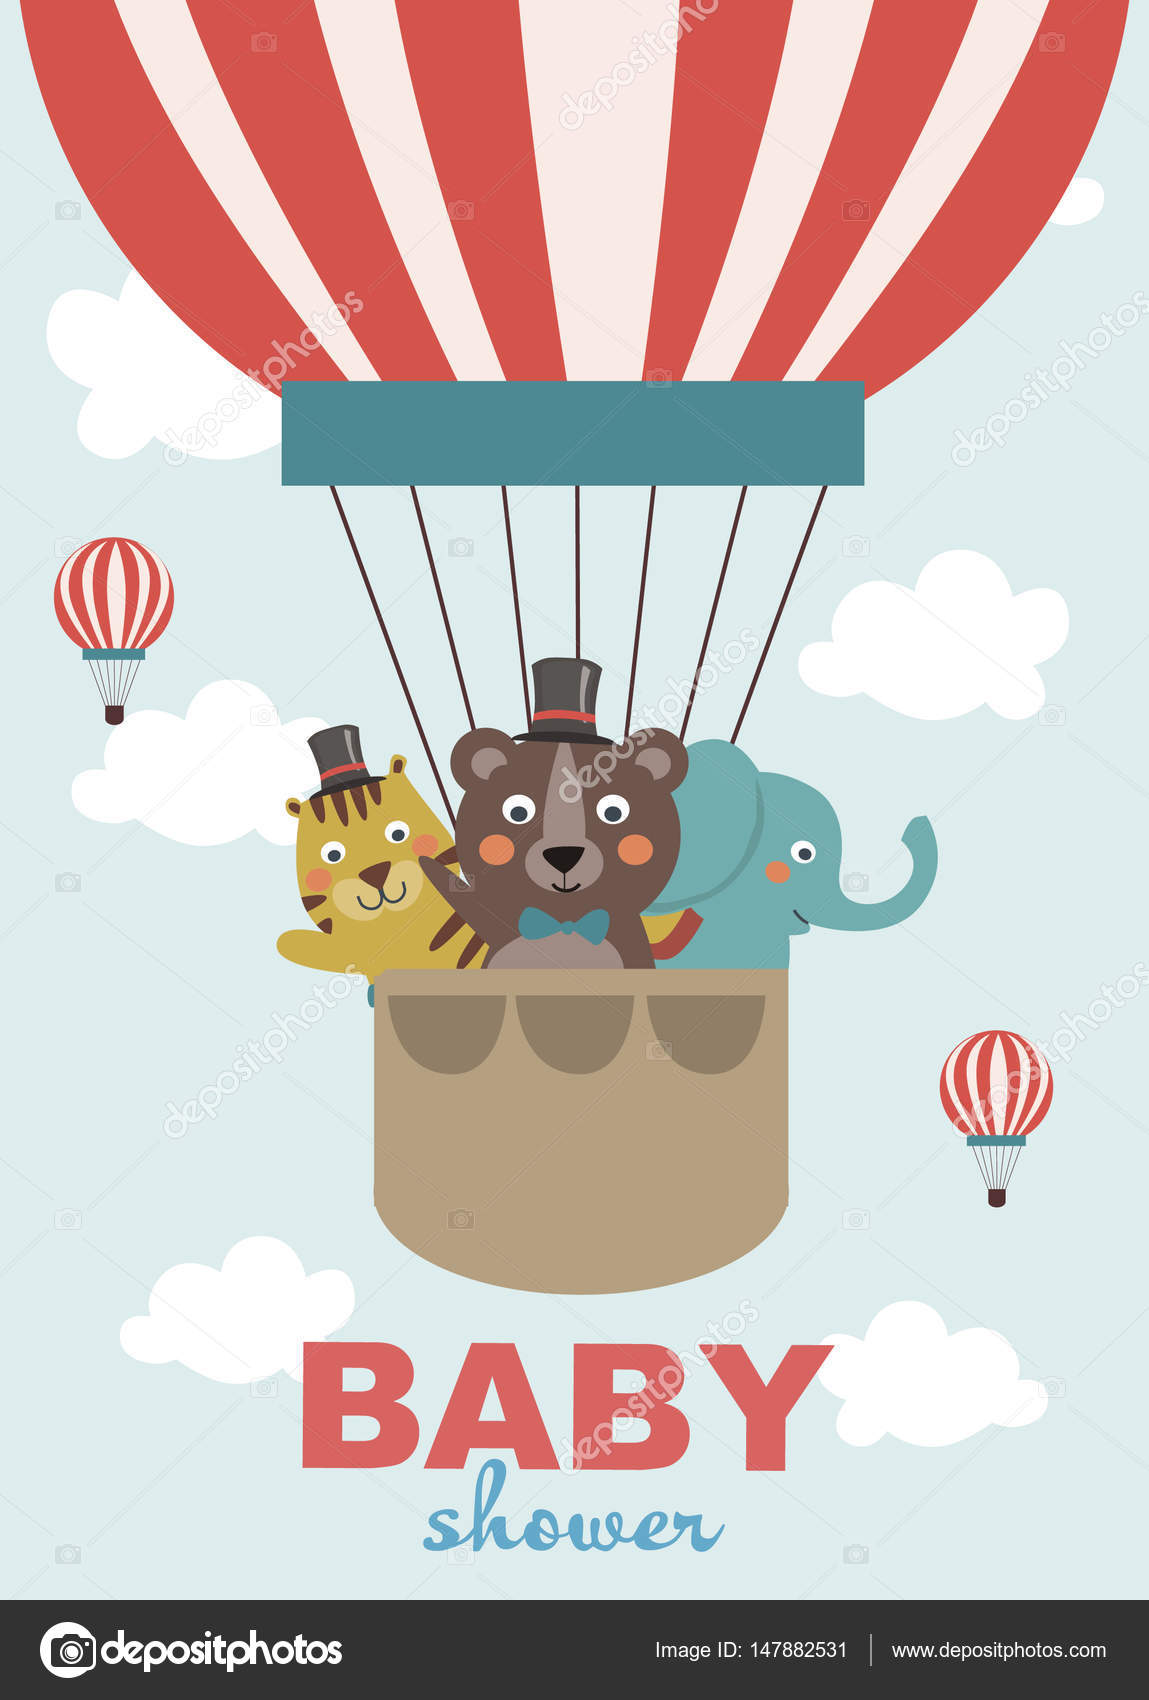 Circus baby shower party invitation or greeting card — Stock Vector ...